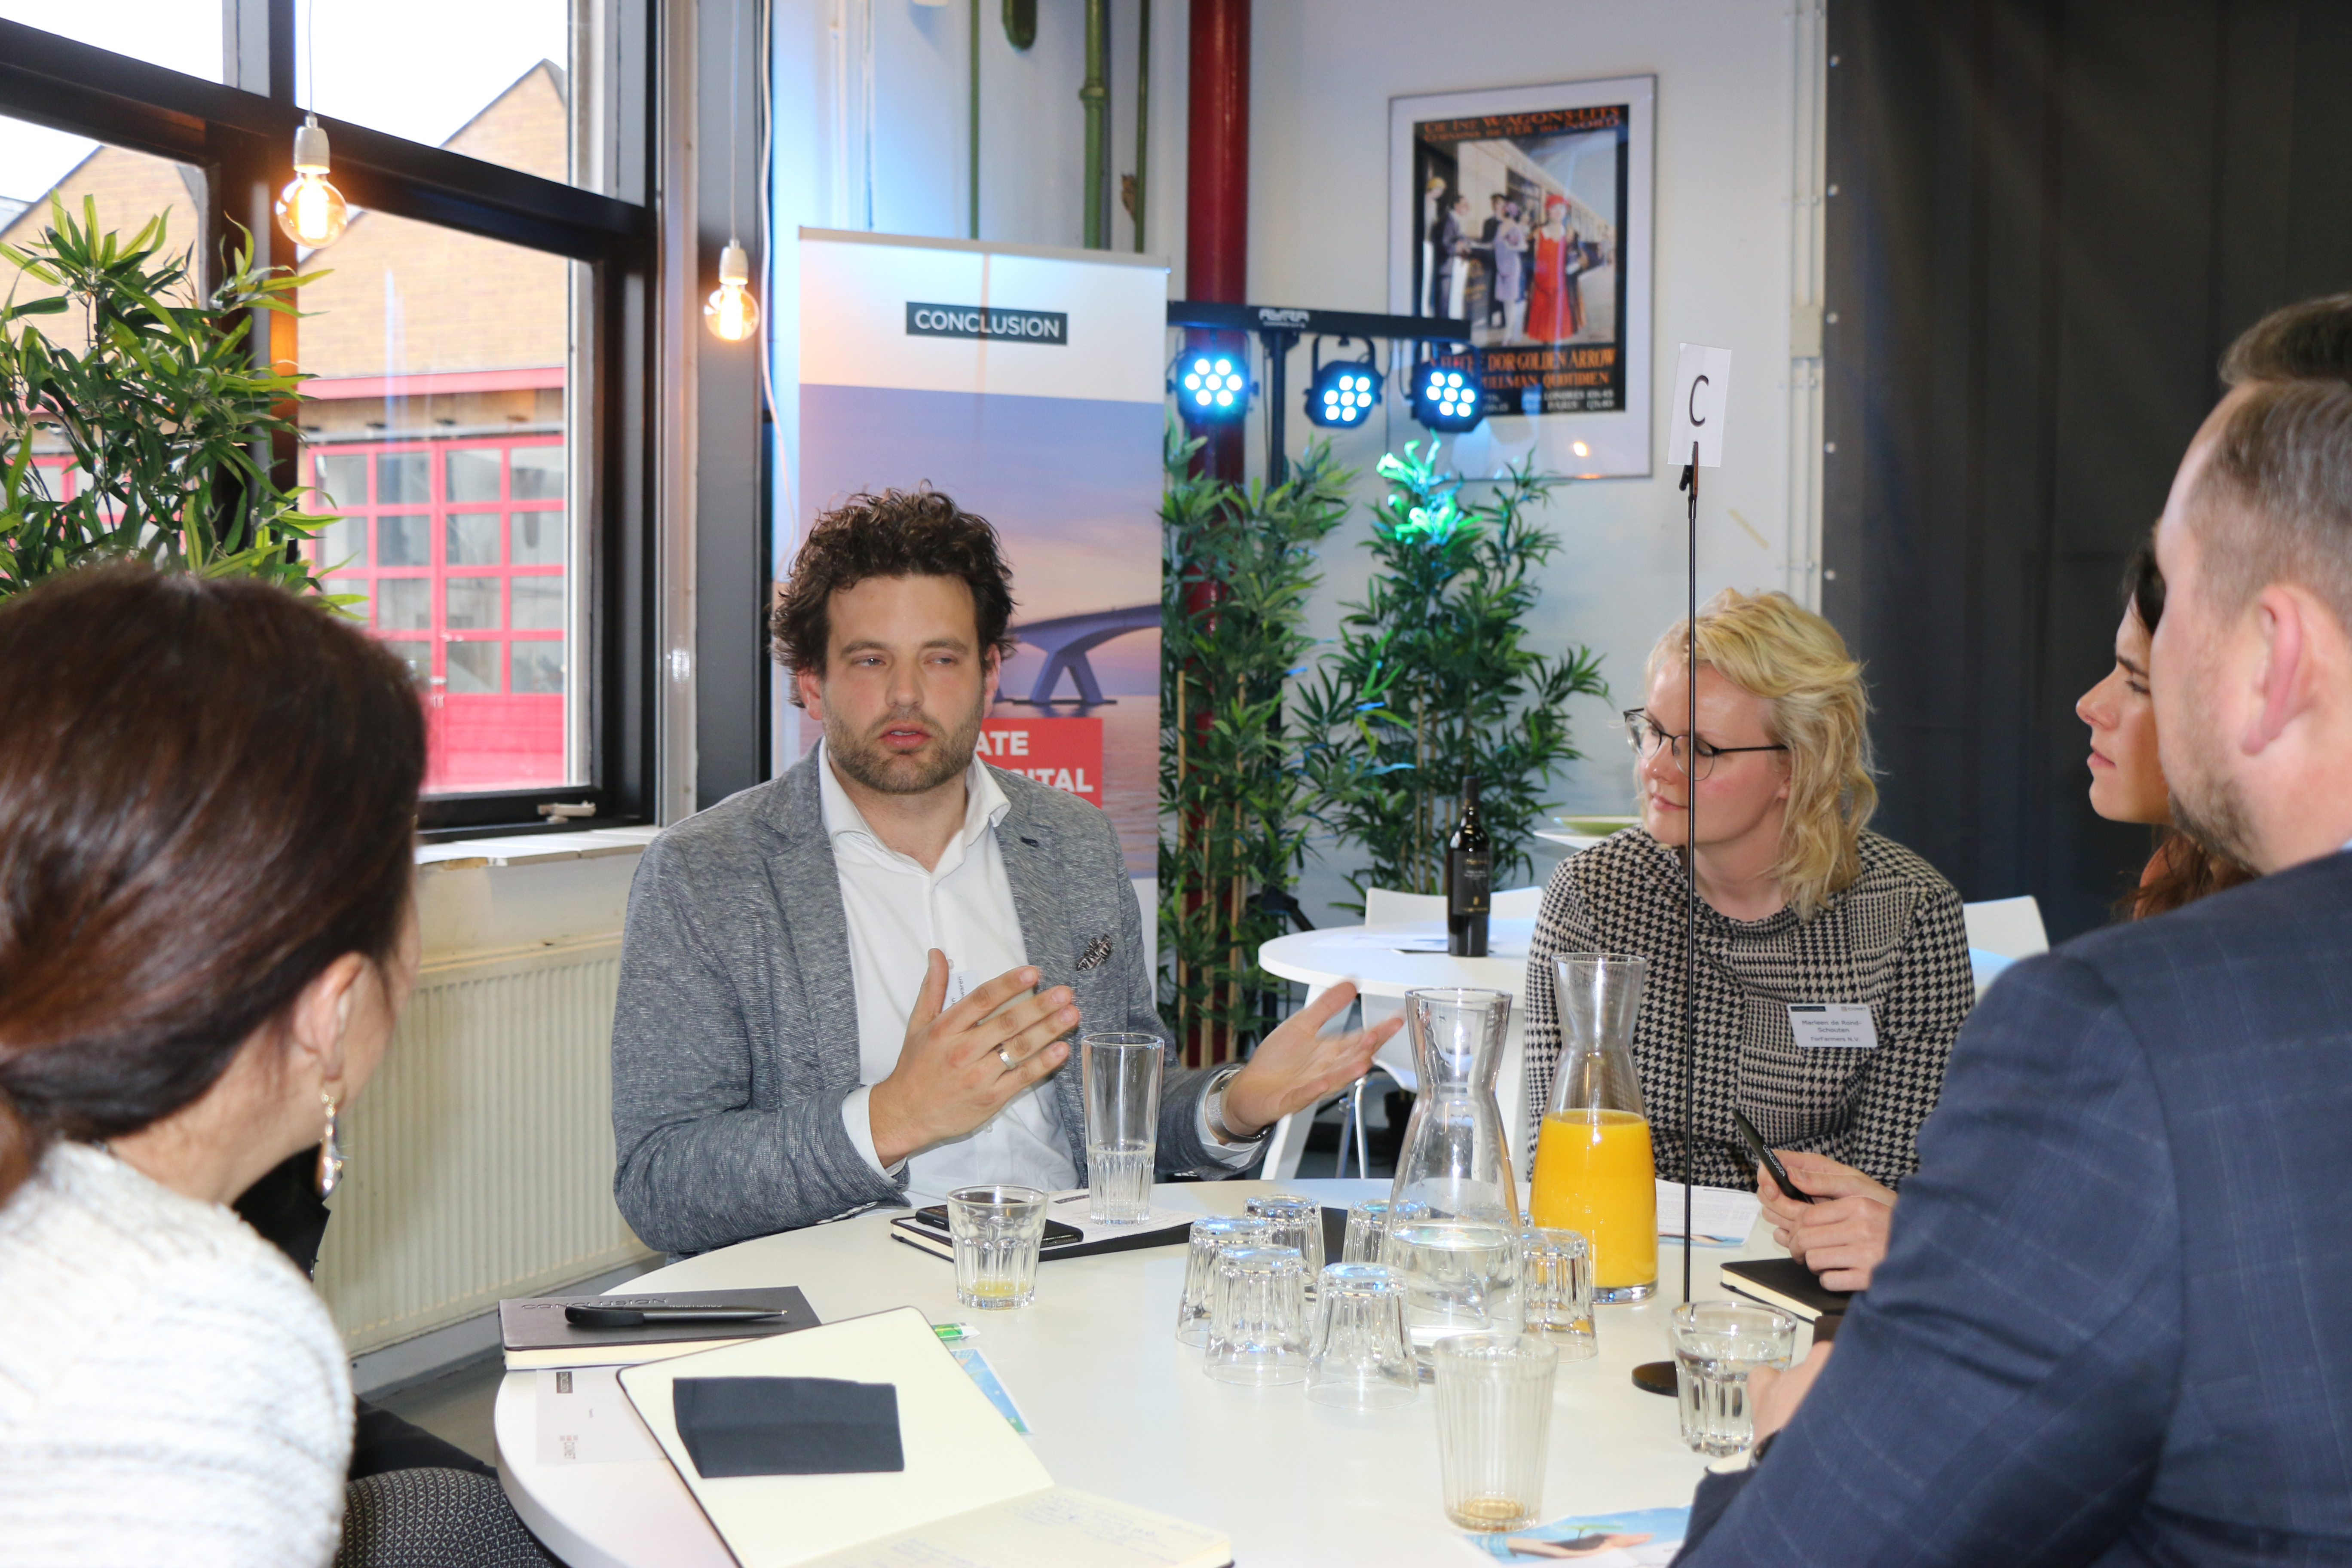 Digital Leaders in gesprek tijdens de Future of Food Chainge bijeenkomst 28 maart 2019 in de 3D Makers Zone